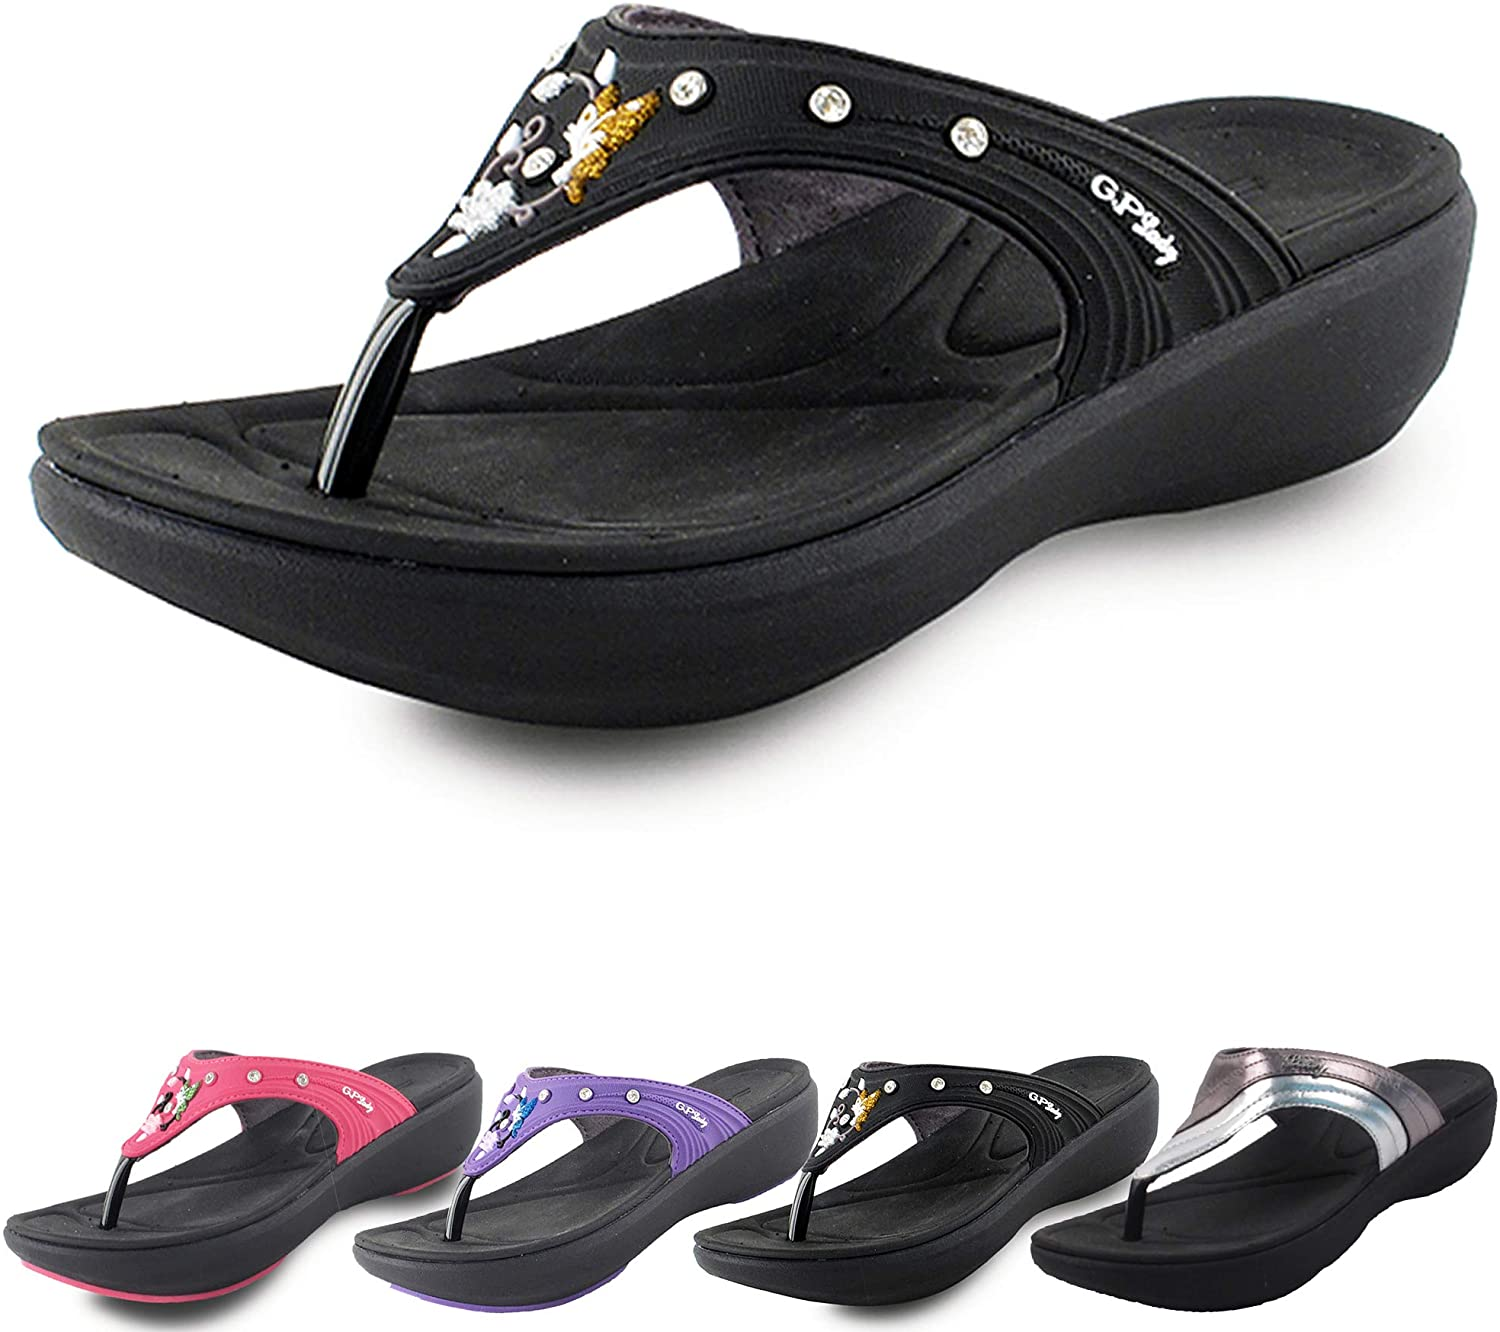 Gold Pigeon Shoes Comfort Memory Foam Padded, Light Weight, Low Platform Flip Flops for Women (Size 4-8)